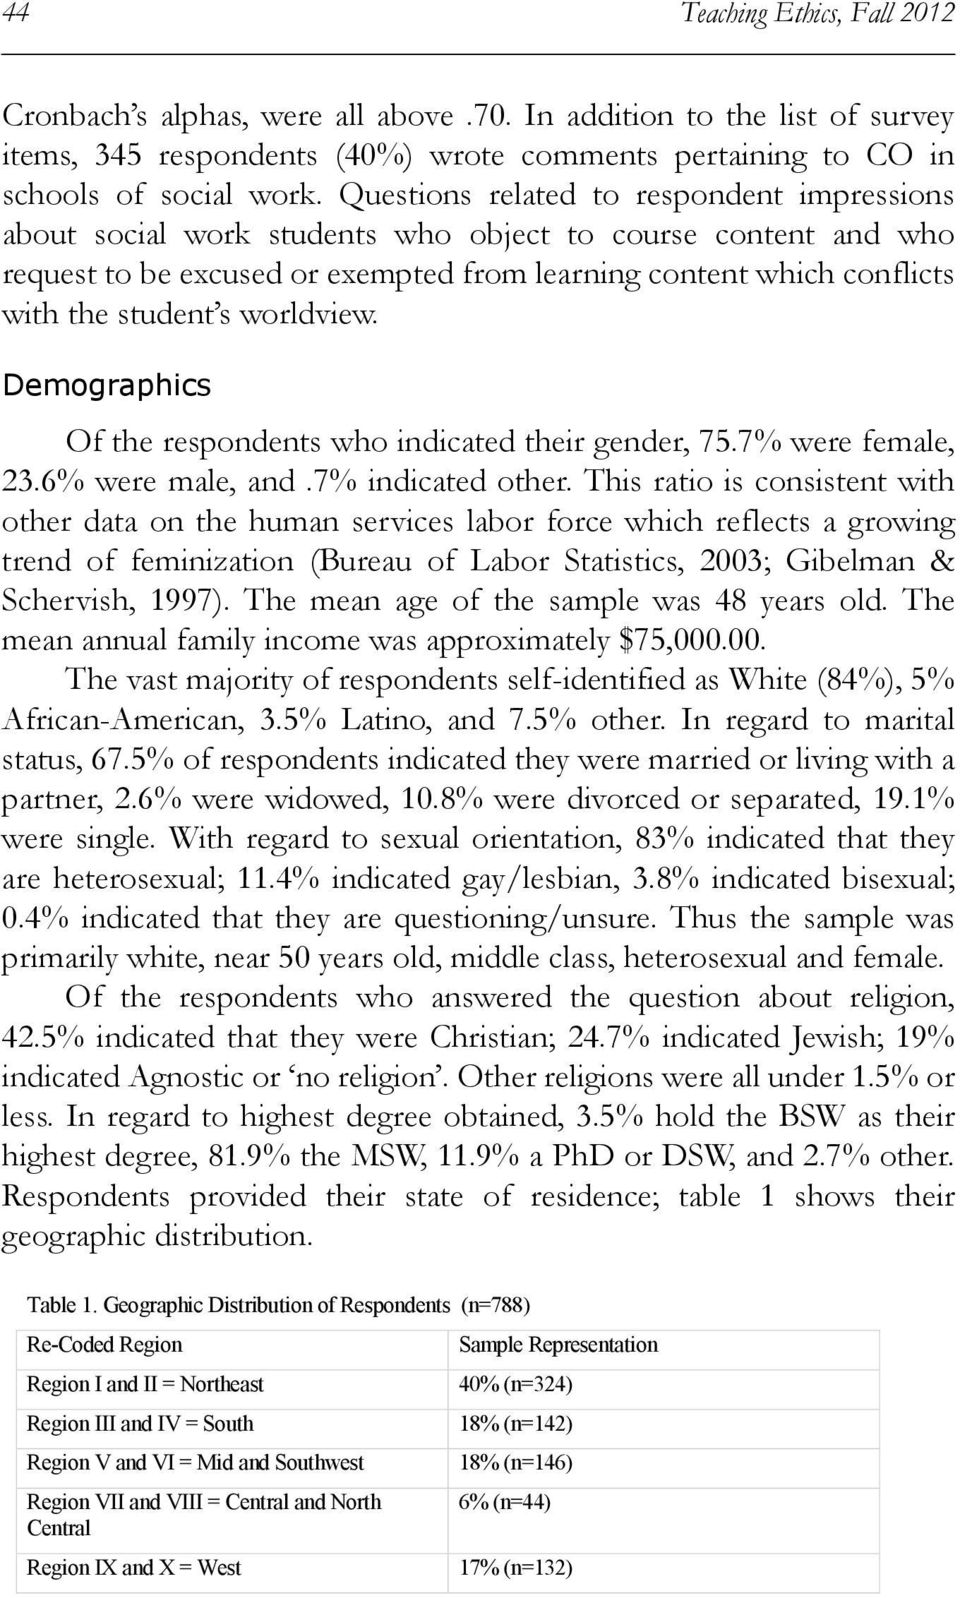 worldview. Demographics Of the respondents who indicated their gender, 75.7% were female, 23.6% were male, and.7% indicated other.